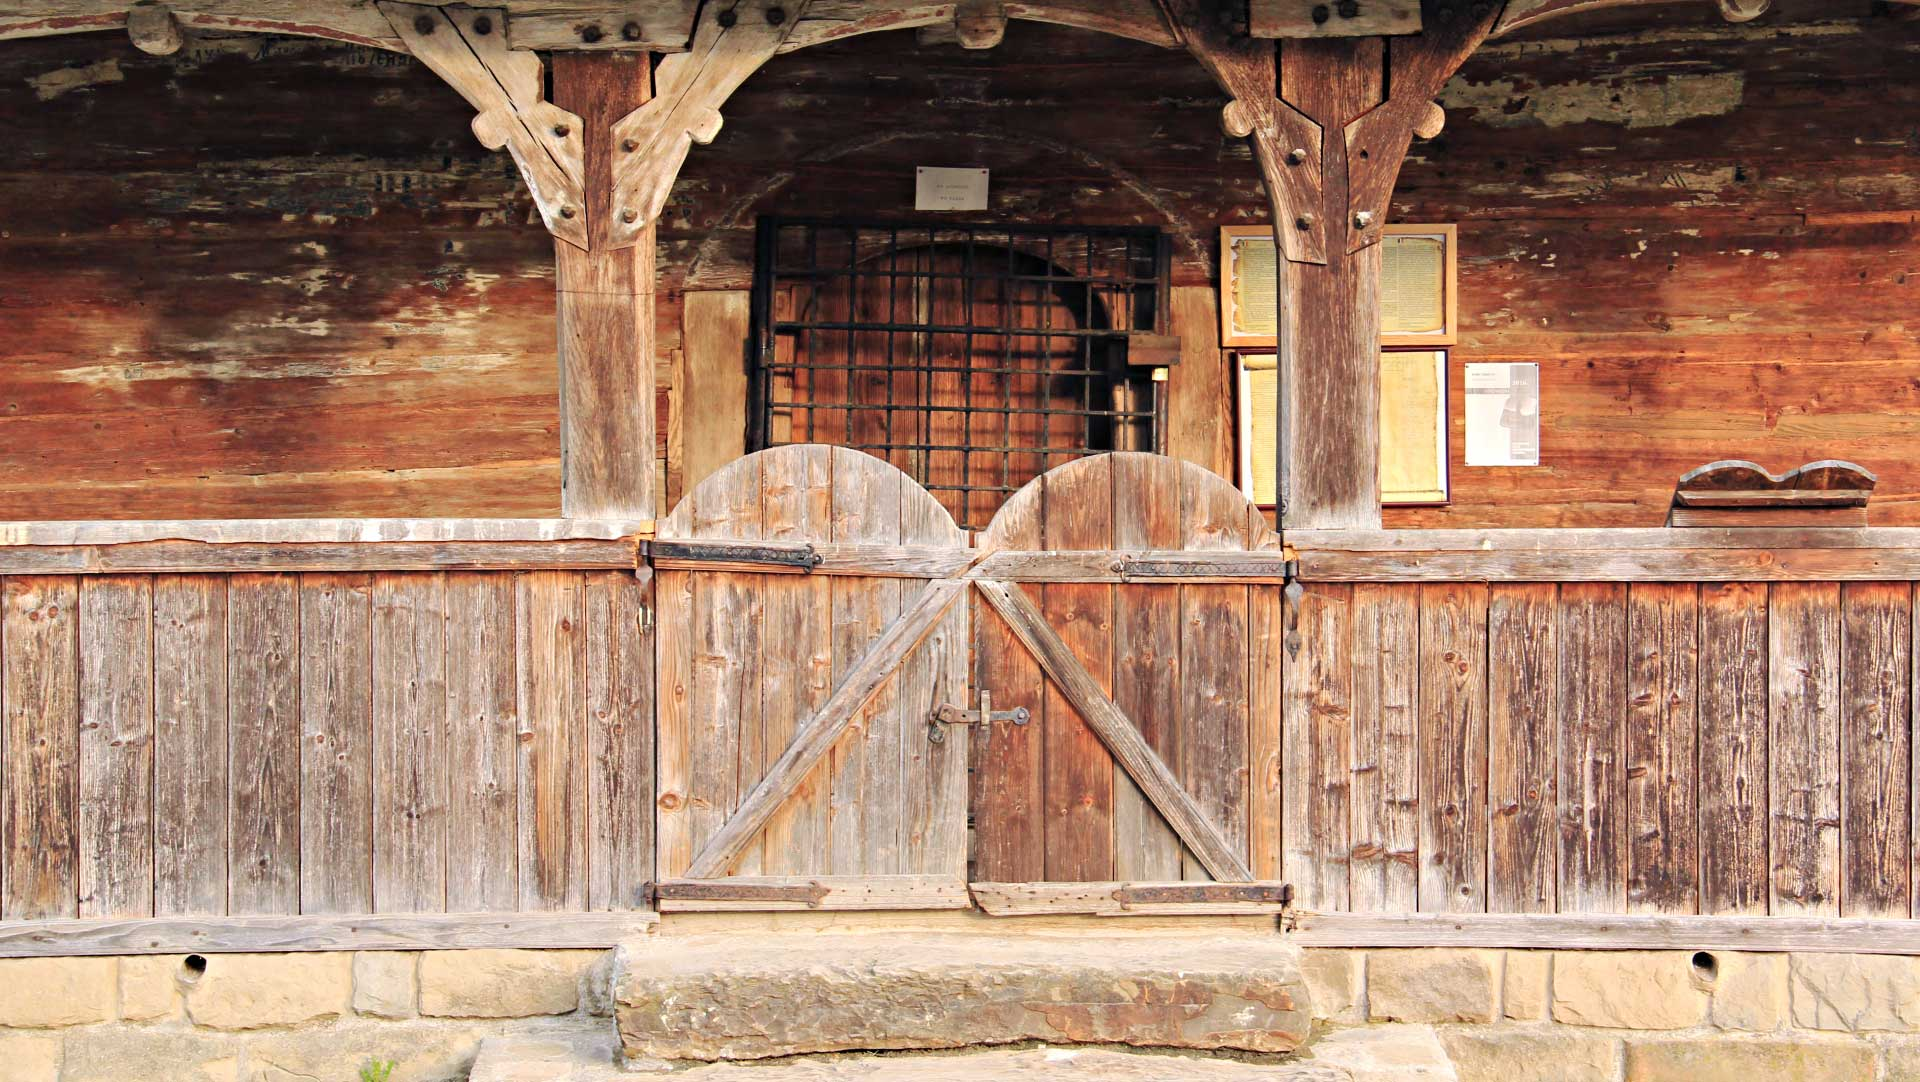 Just before Vadu Izei, I stopped once again, when I spoted another wooden church nearby the road. This is the entrance gate. Photo by Ovidiu Balaj